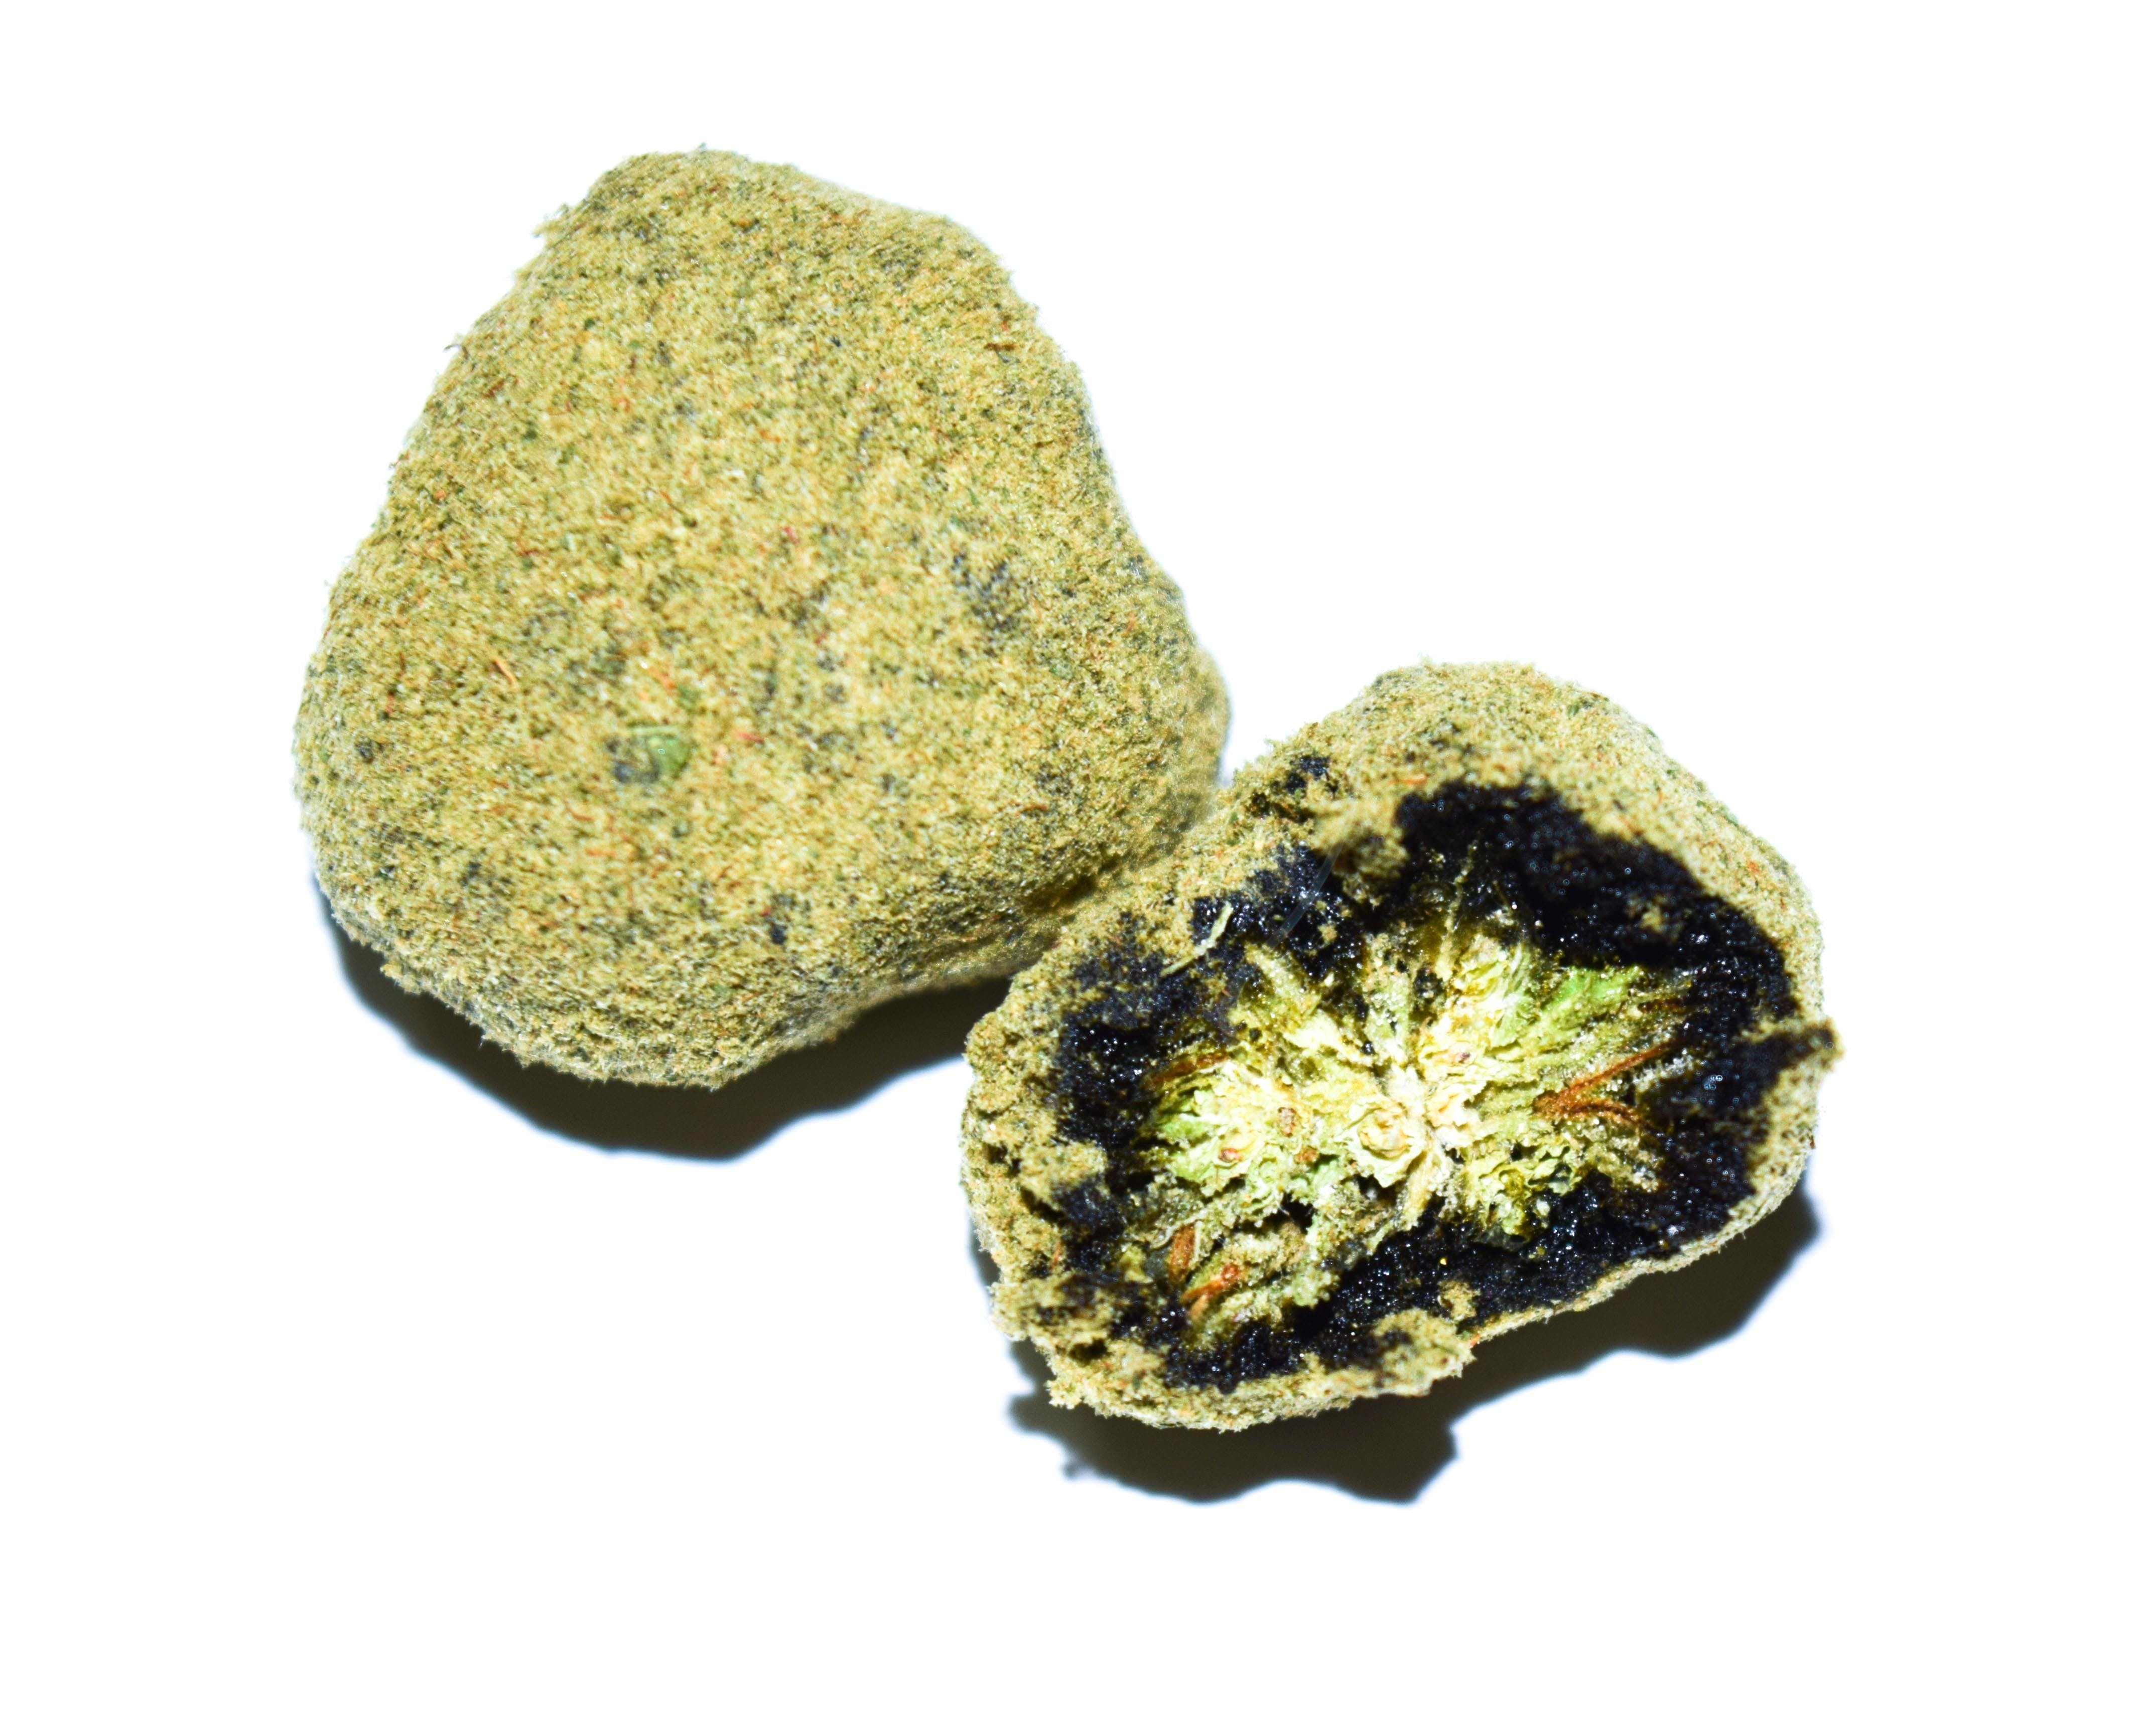 marijuana-dispensaries-pomona-faith-and-fellowship-in-pomona-moonrocks-vanilla